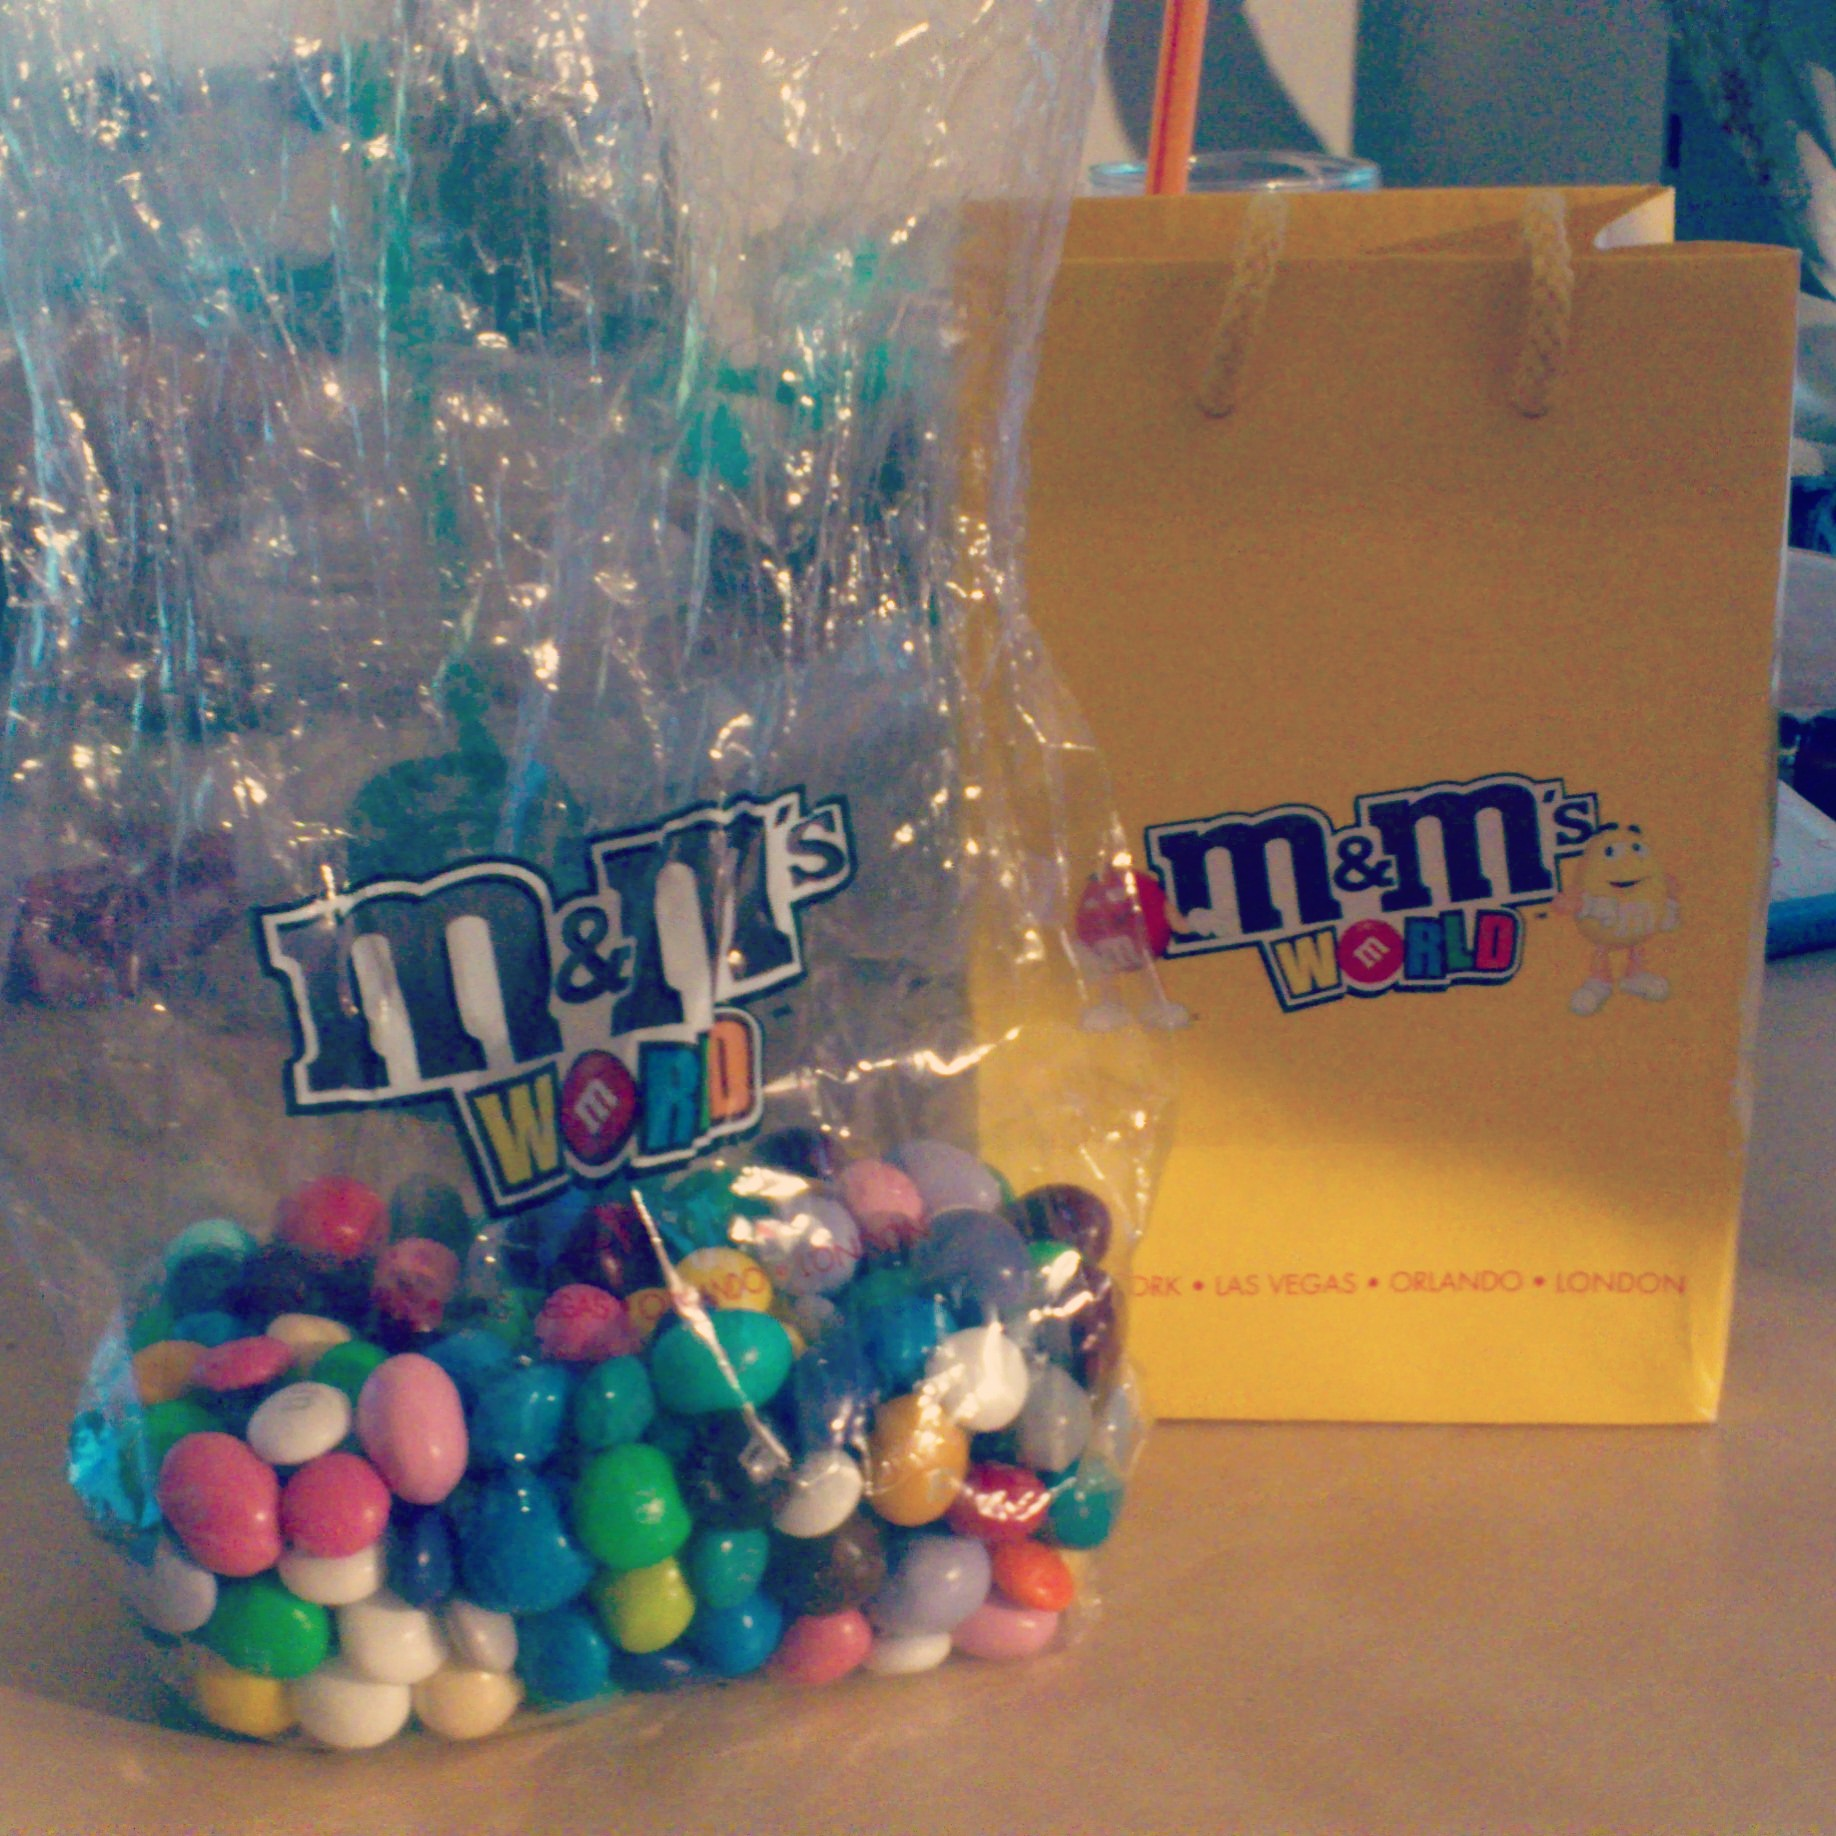 M&m Brezel M Andms World New York As Far As Possible